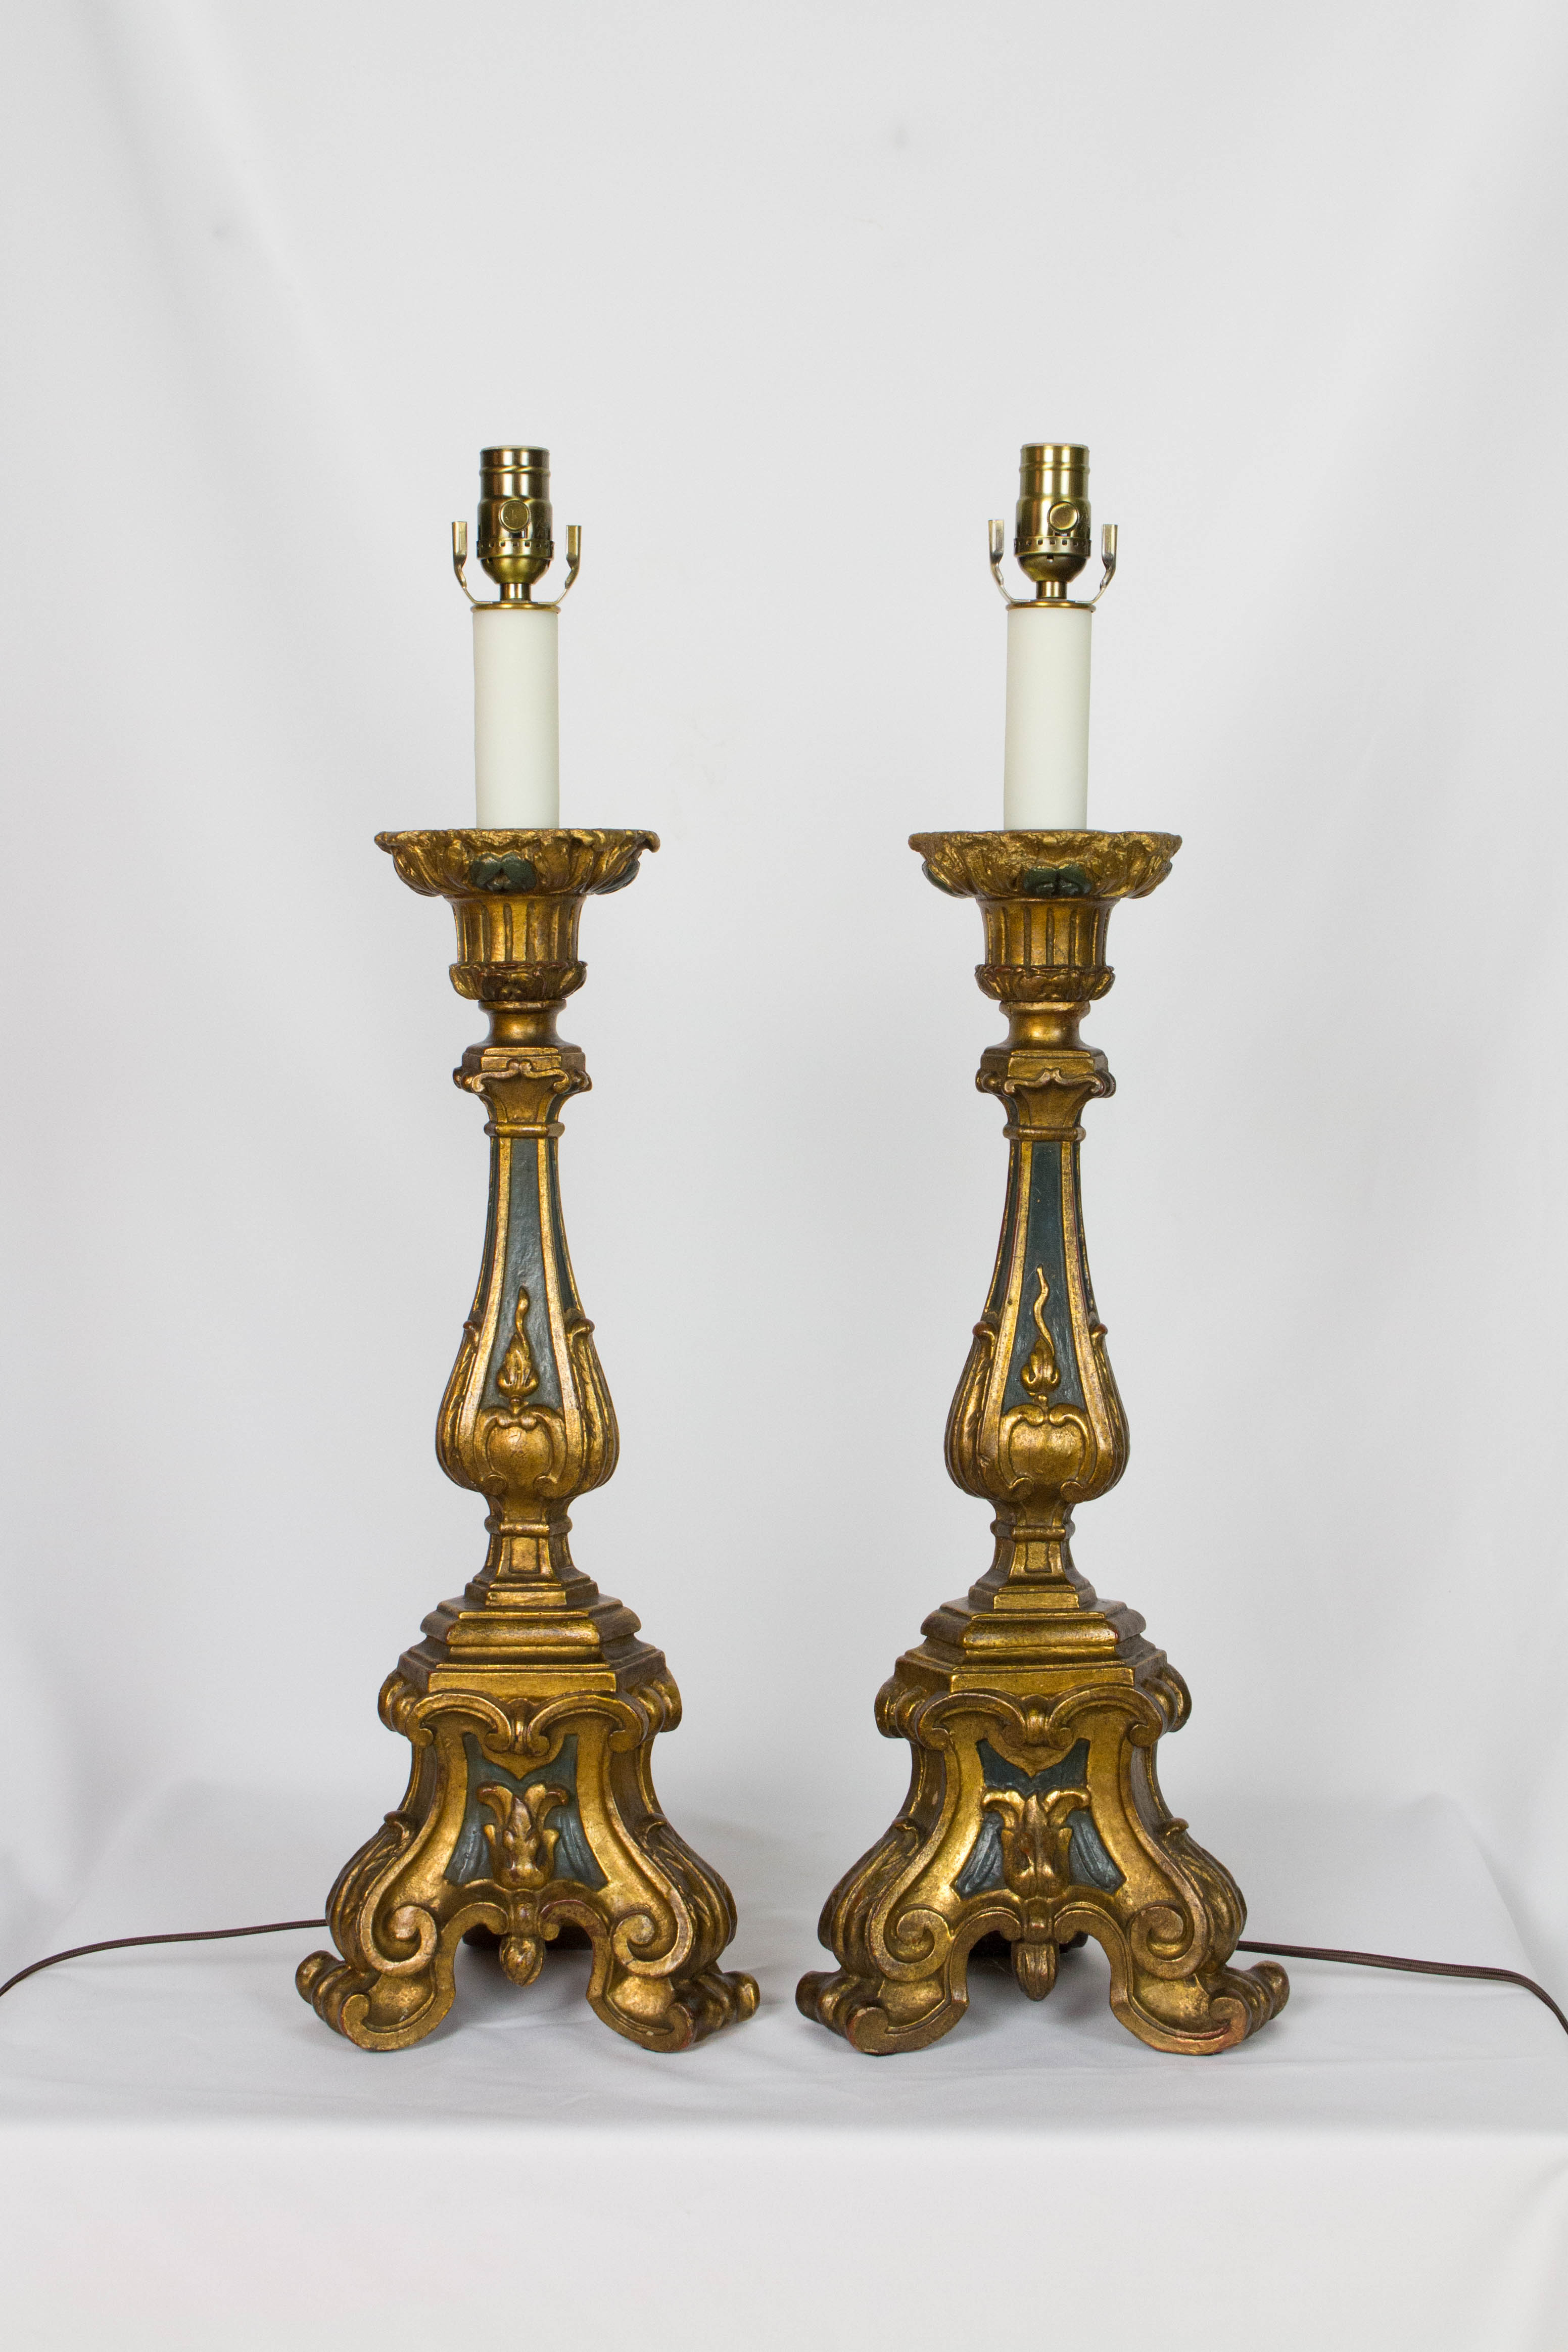 Pair Of Gilt Wood Candlestick Lamps